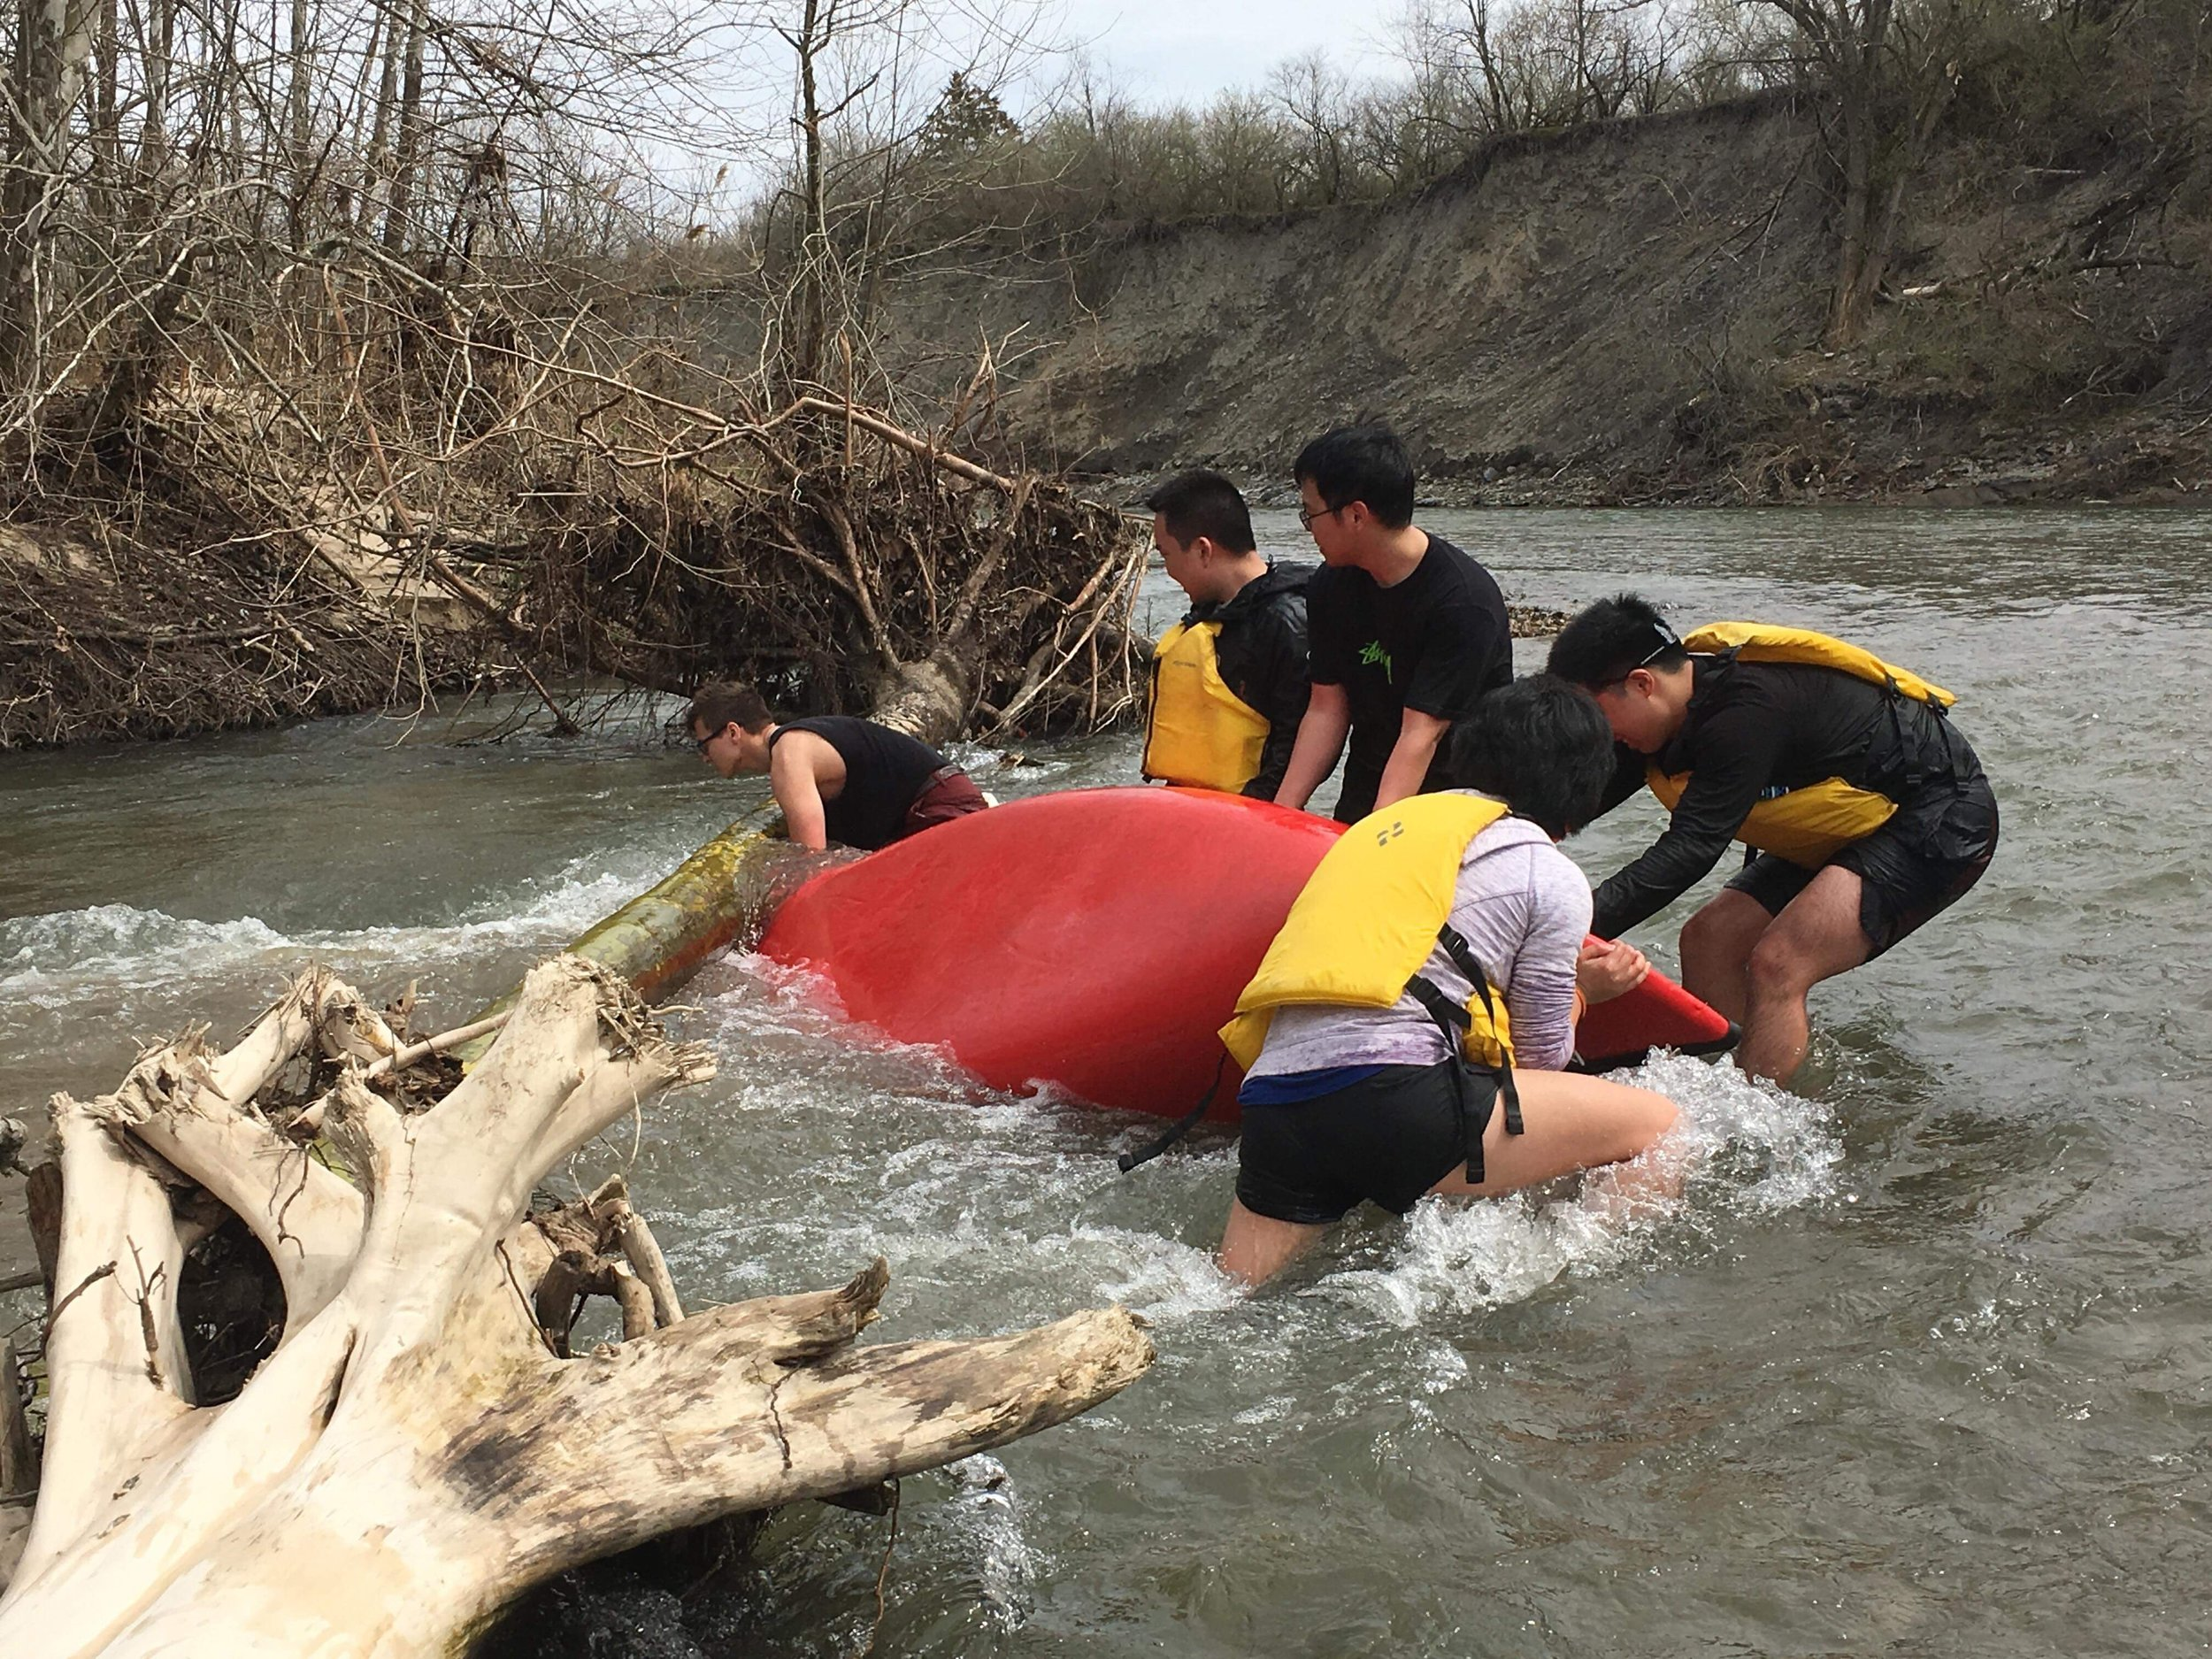 Some more hero action as Yaros, Jimmy, Andrew, Jerry, and Iris attempted to rescue a capsized canoe